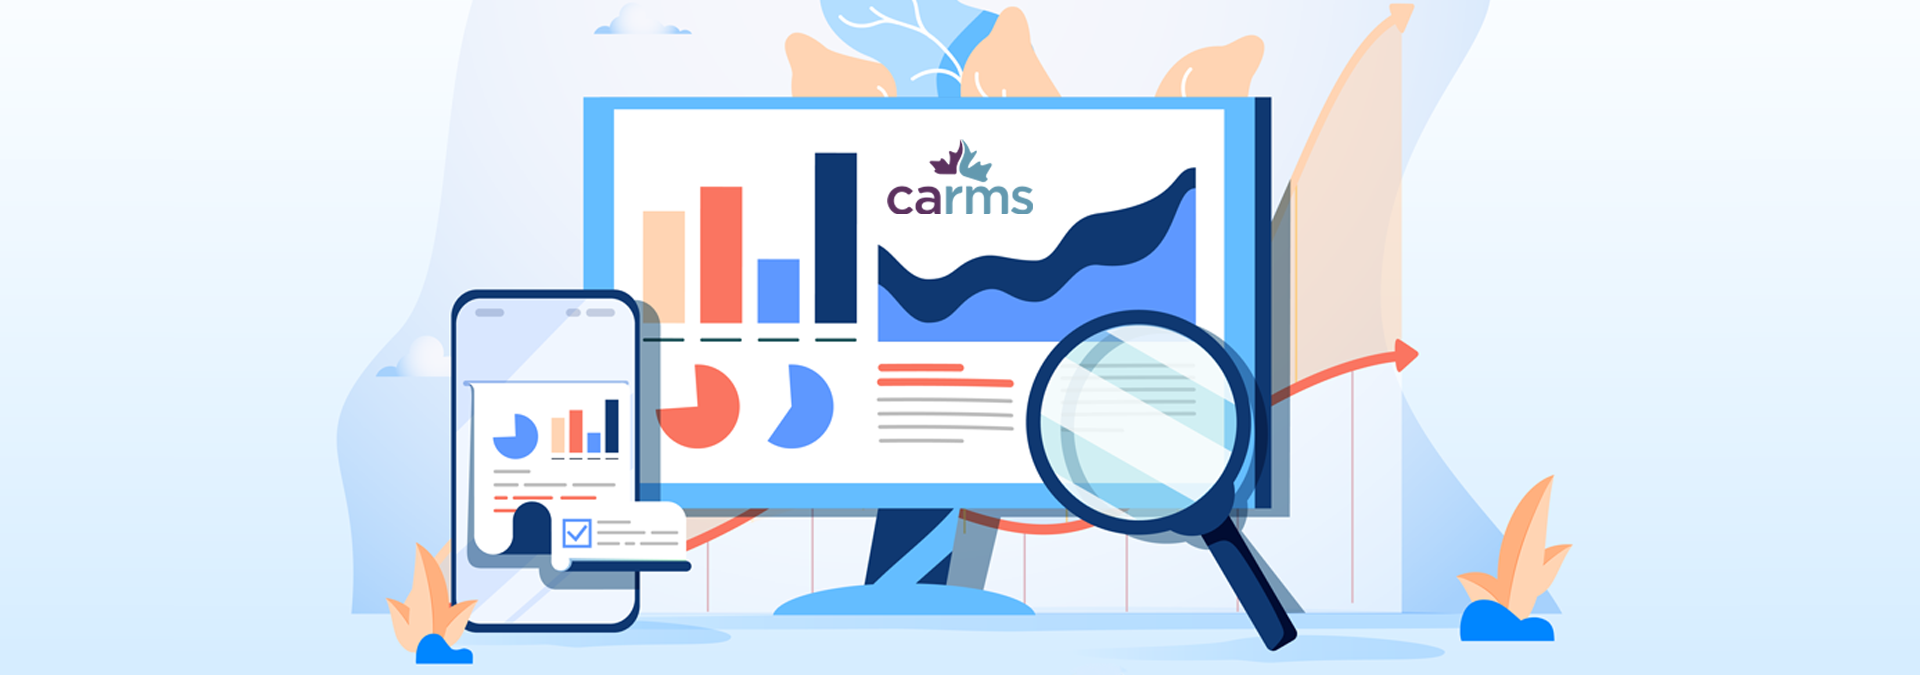 carms-data-update-banner-image-2-mfca